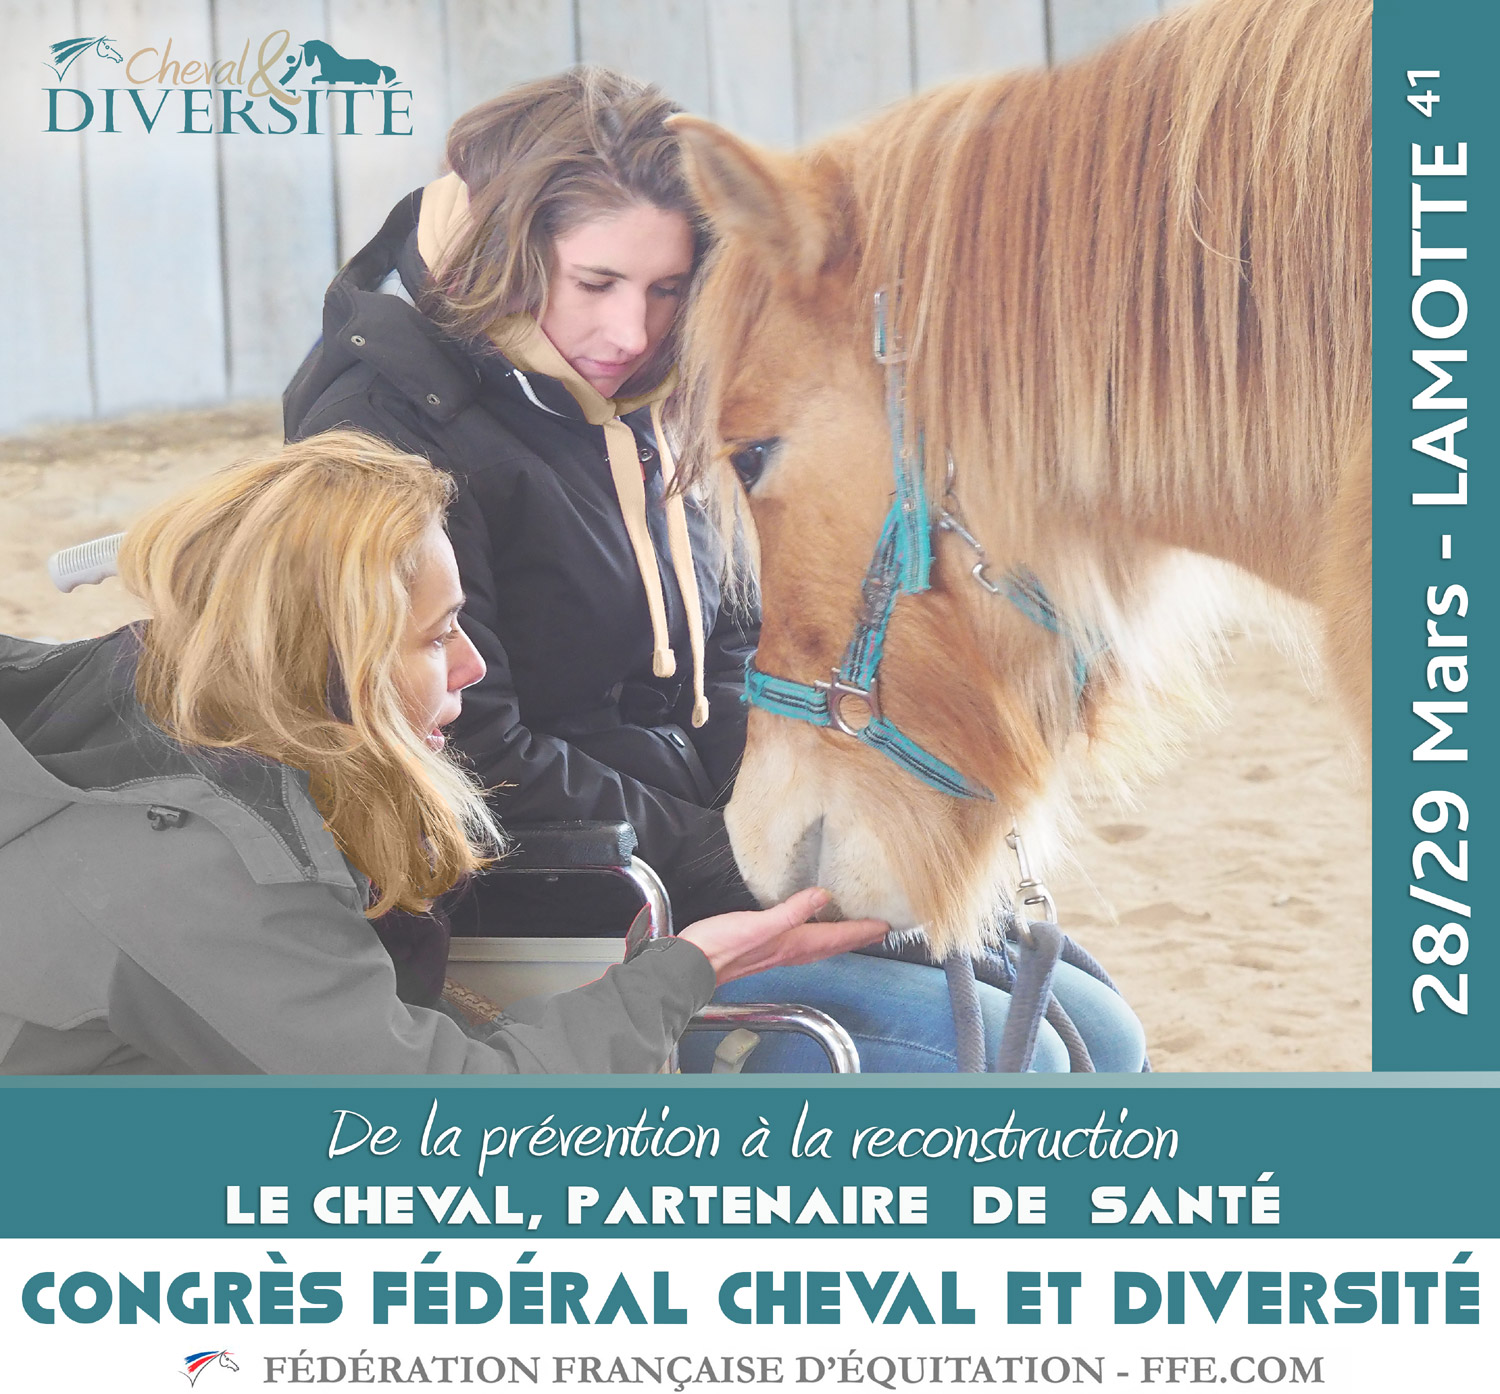 FFE-Cheval-et-Diversite-in